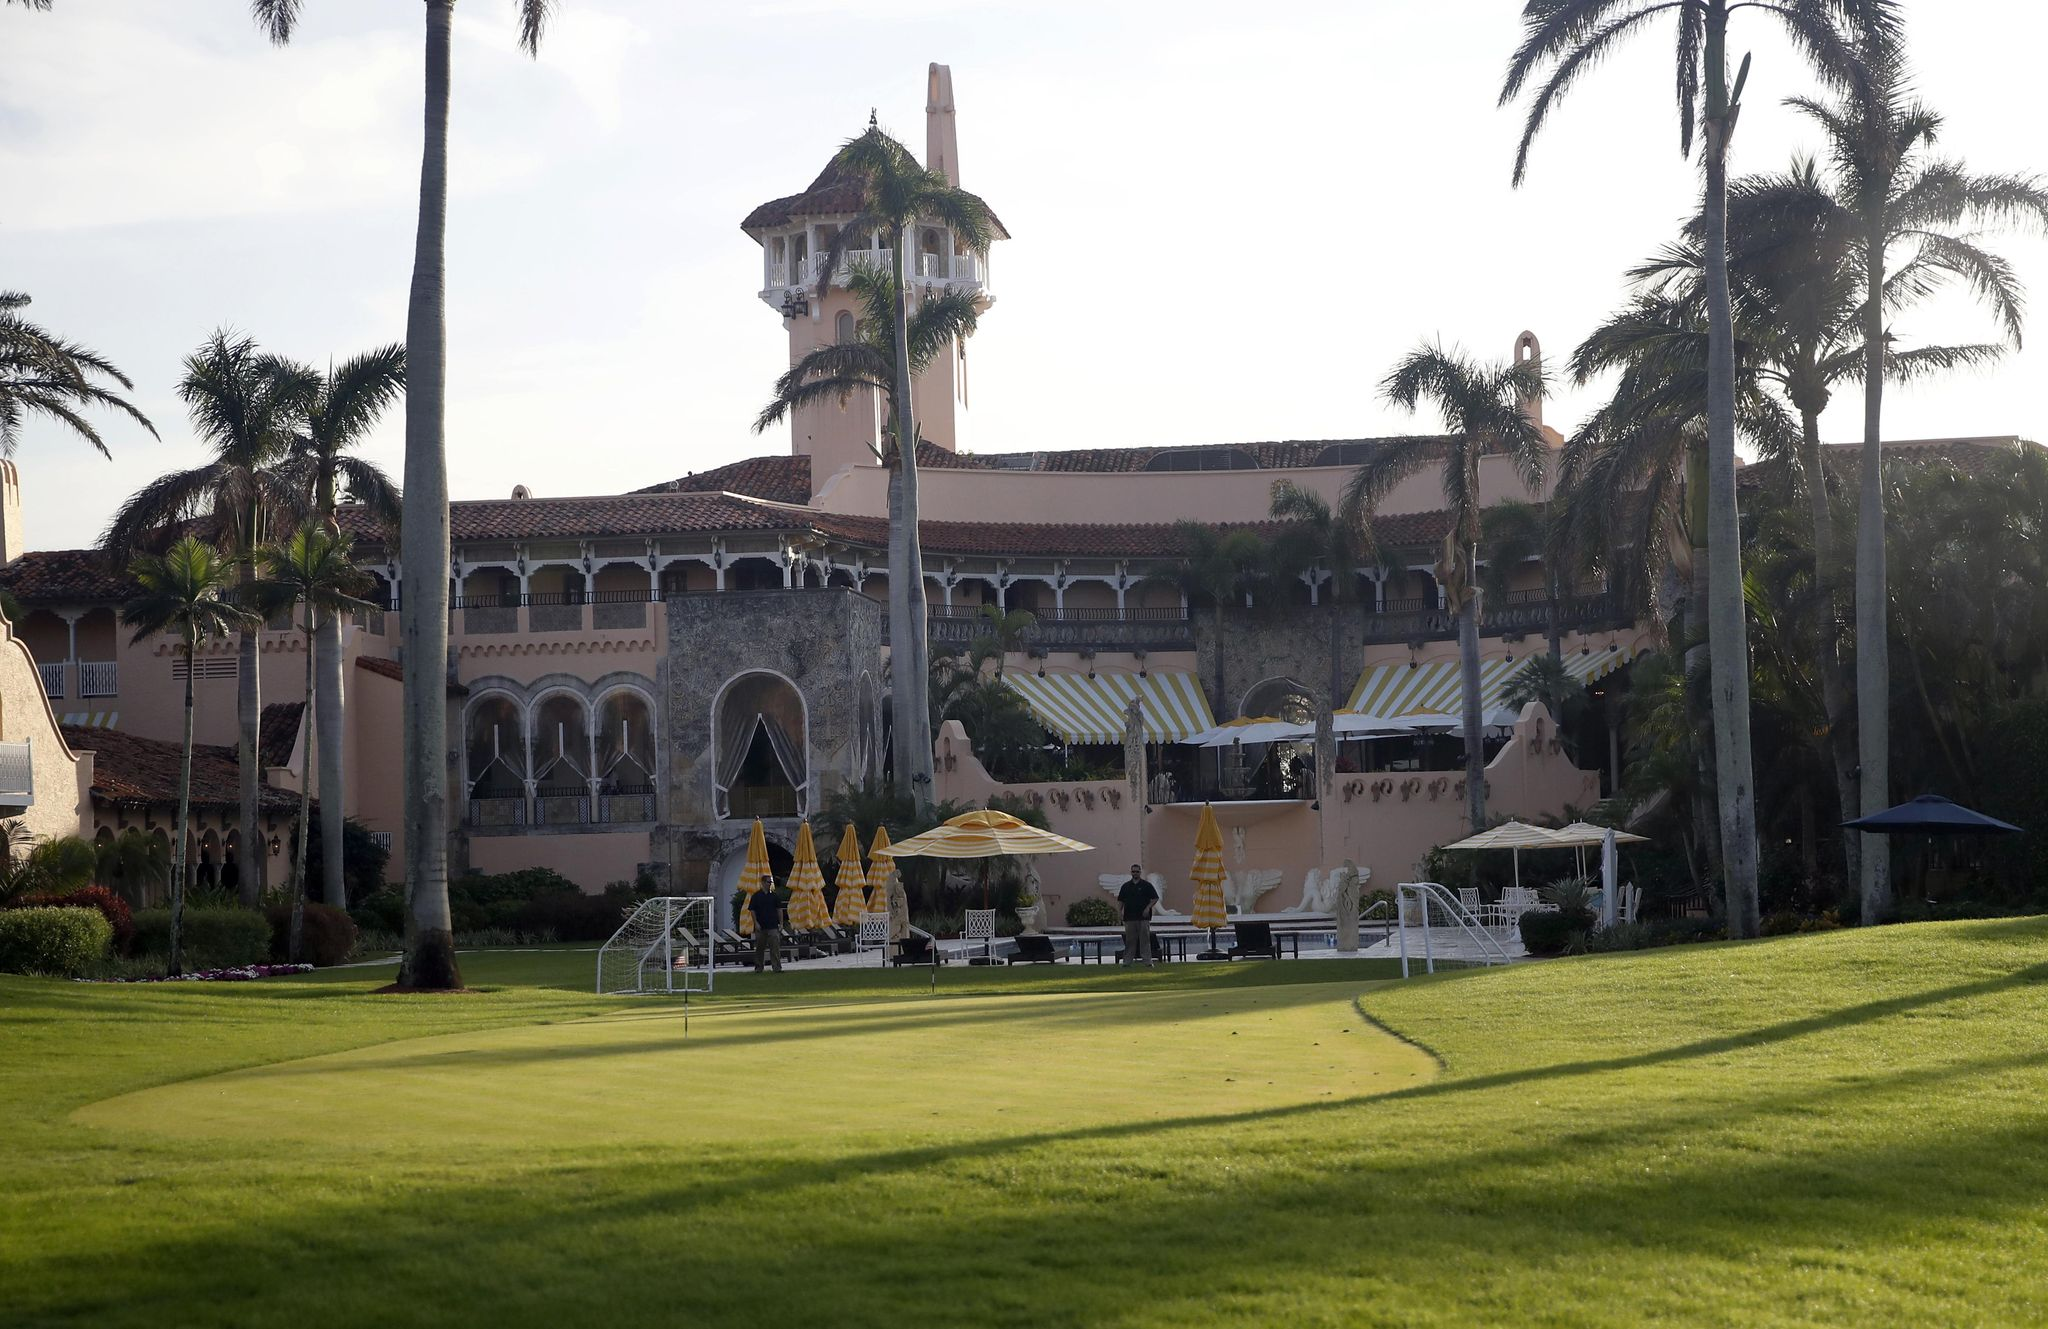 Trump's income from Mar-a-Lago fell nearly $3 million in 2018, records show